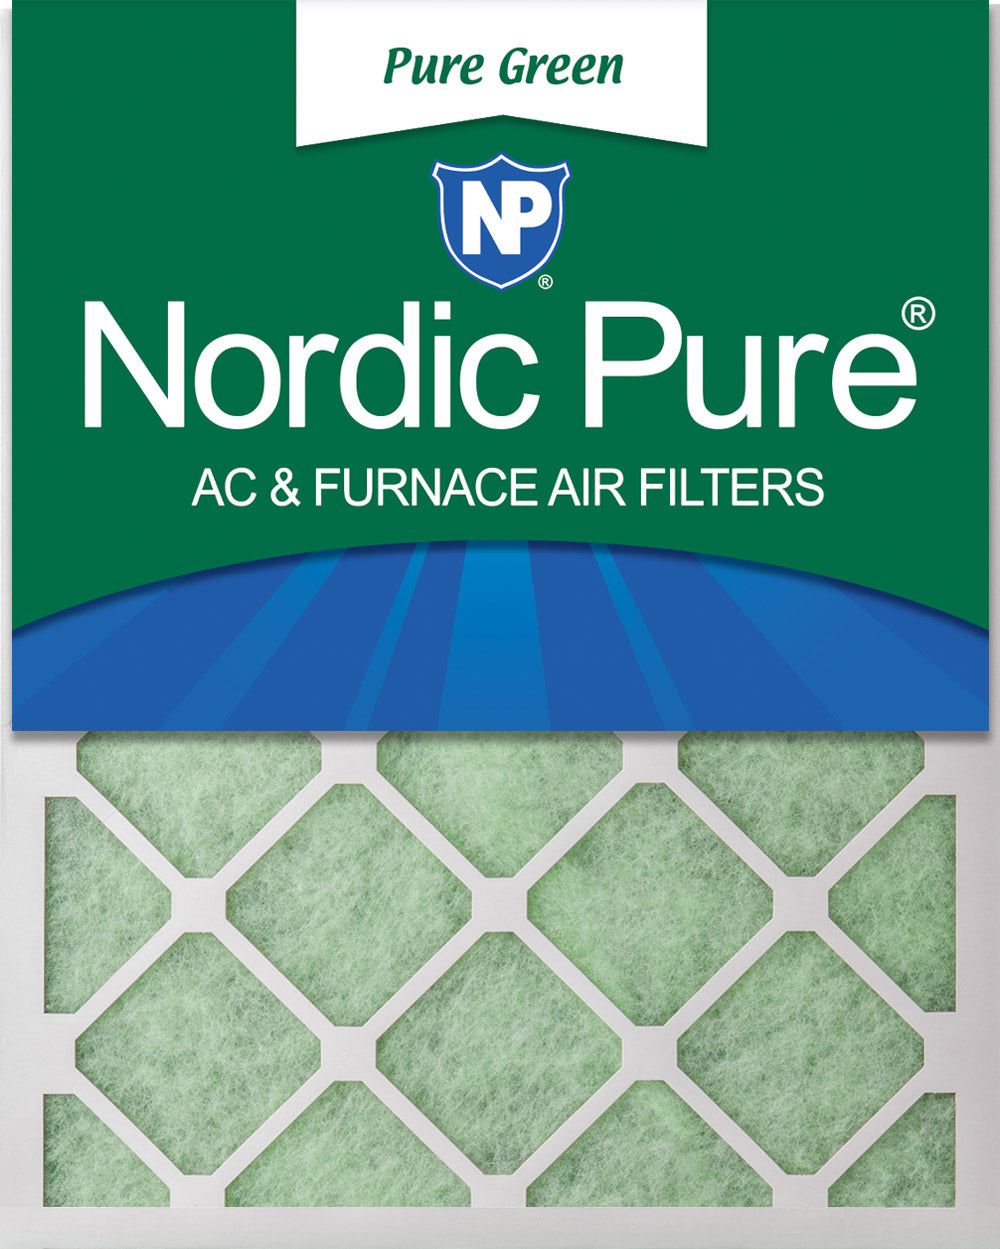 20x30x1 Pure Green Eco-Friendly AC Furnace Air Filters 6 Pack